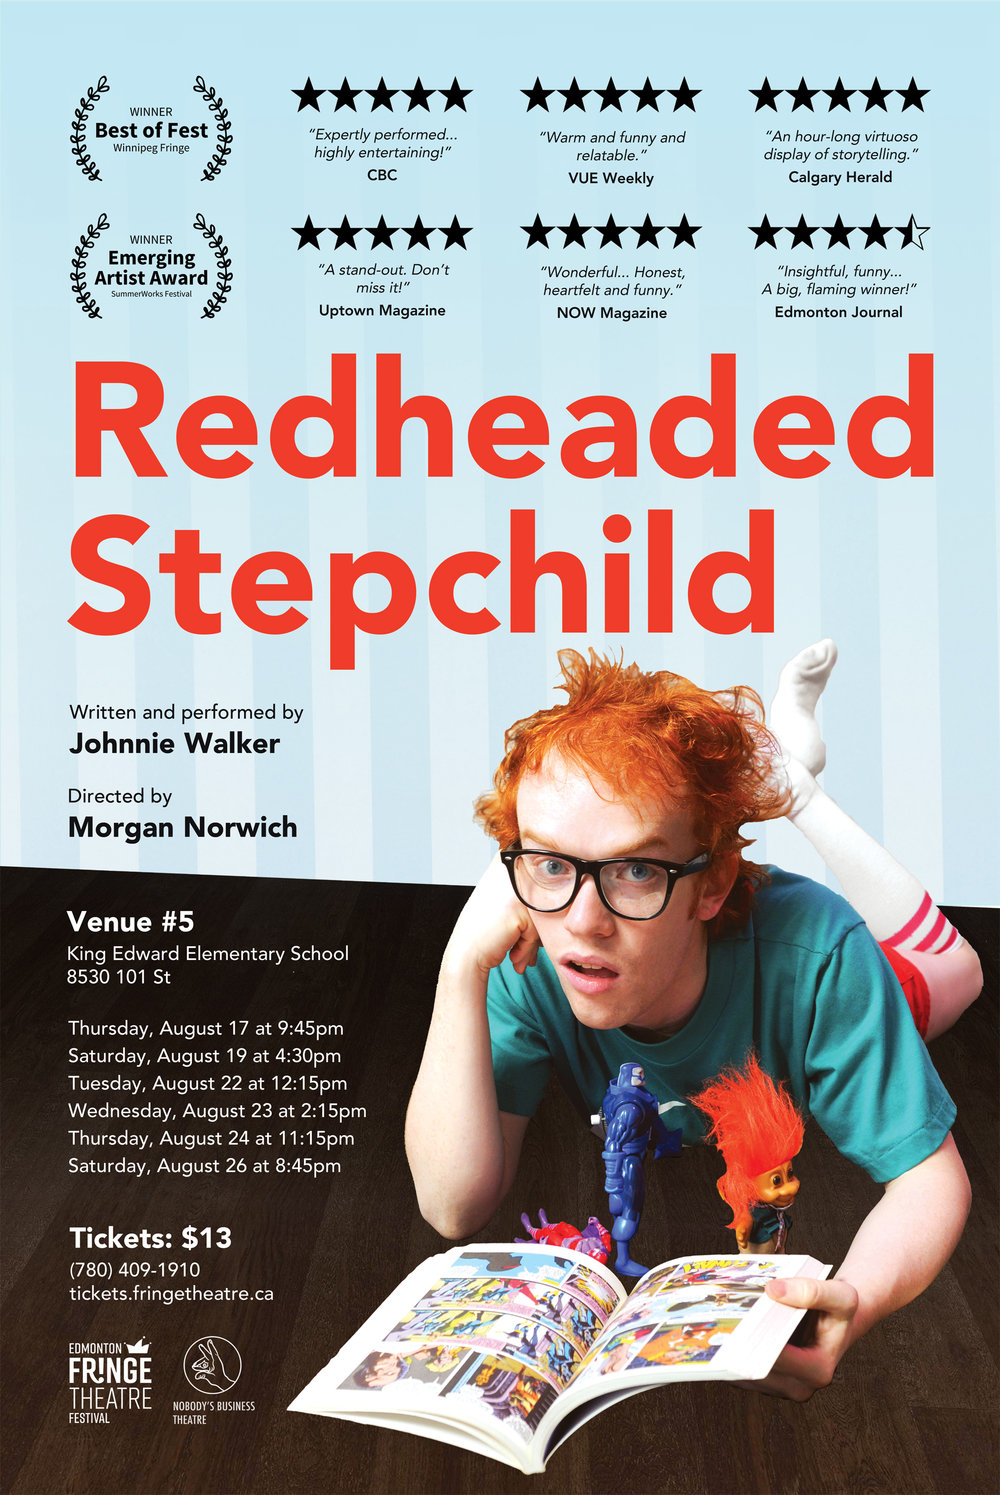 Redheaded Stepchild poster, 2017